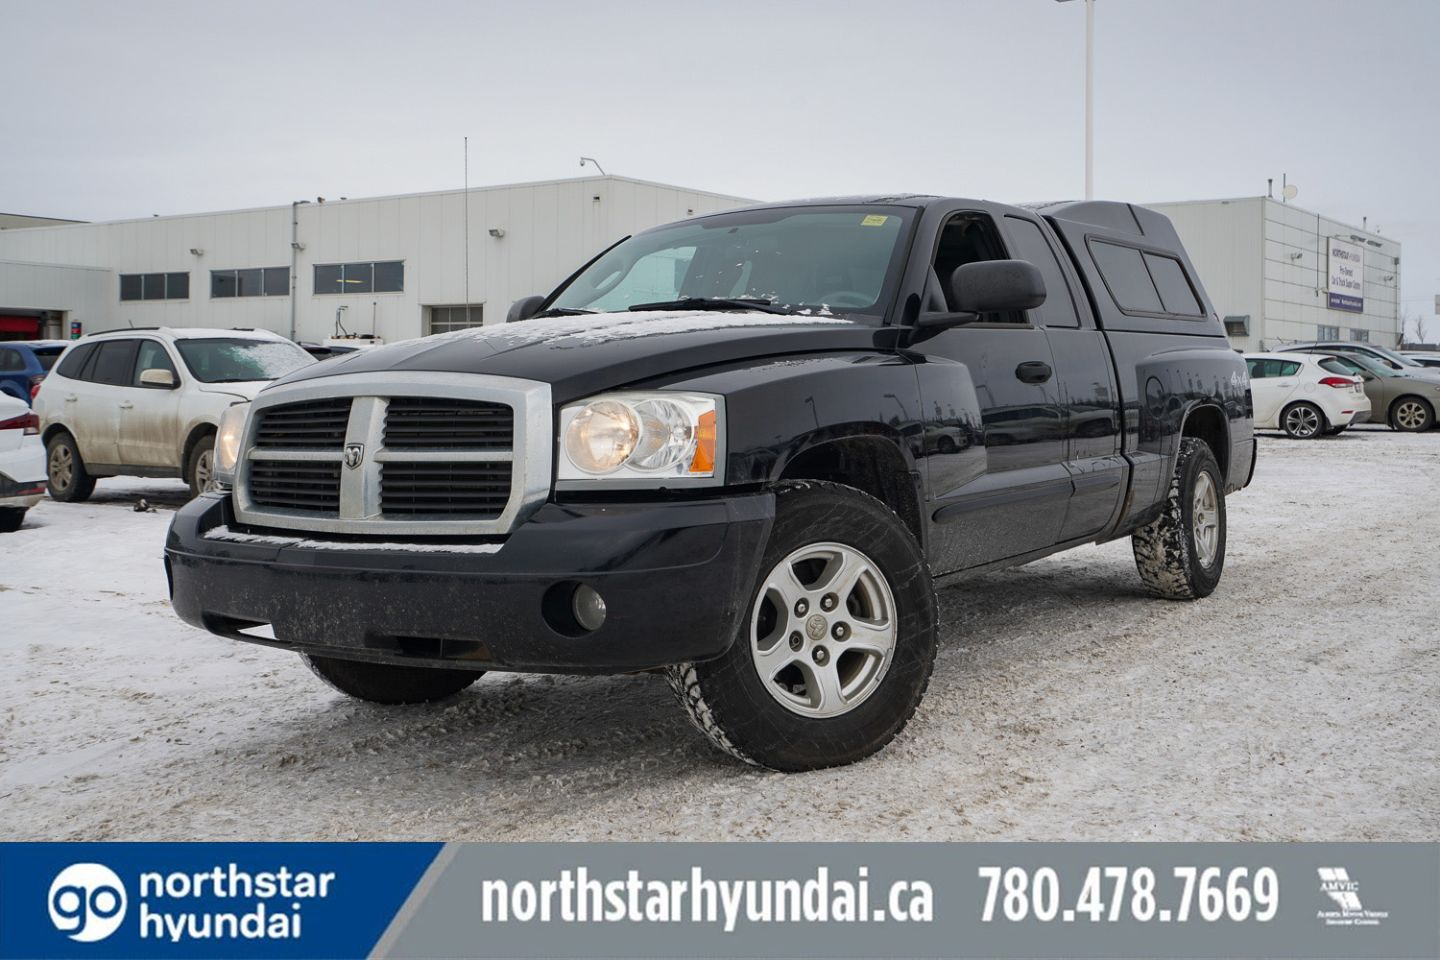 2005 Dodge Dakota SLT for sale in Edmonton, Alberta